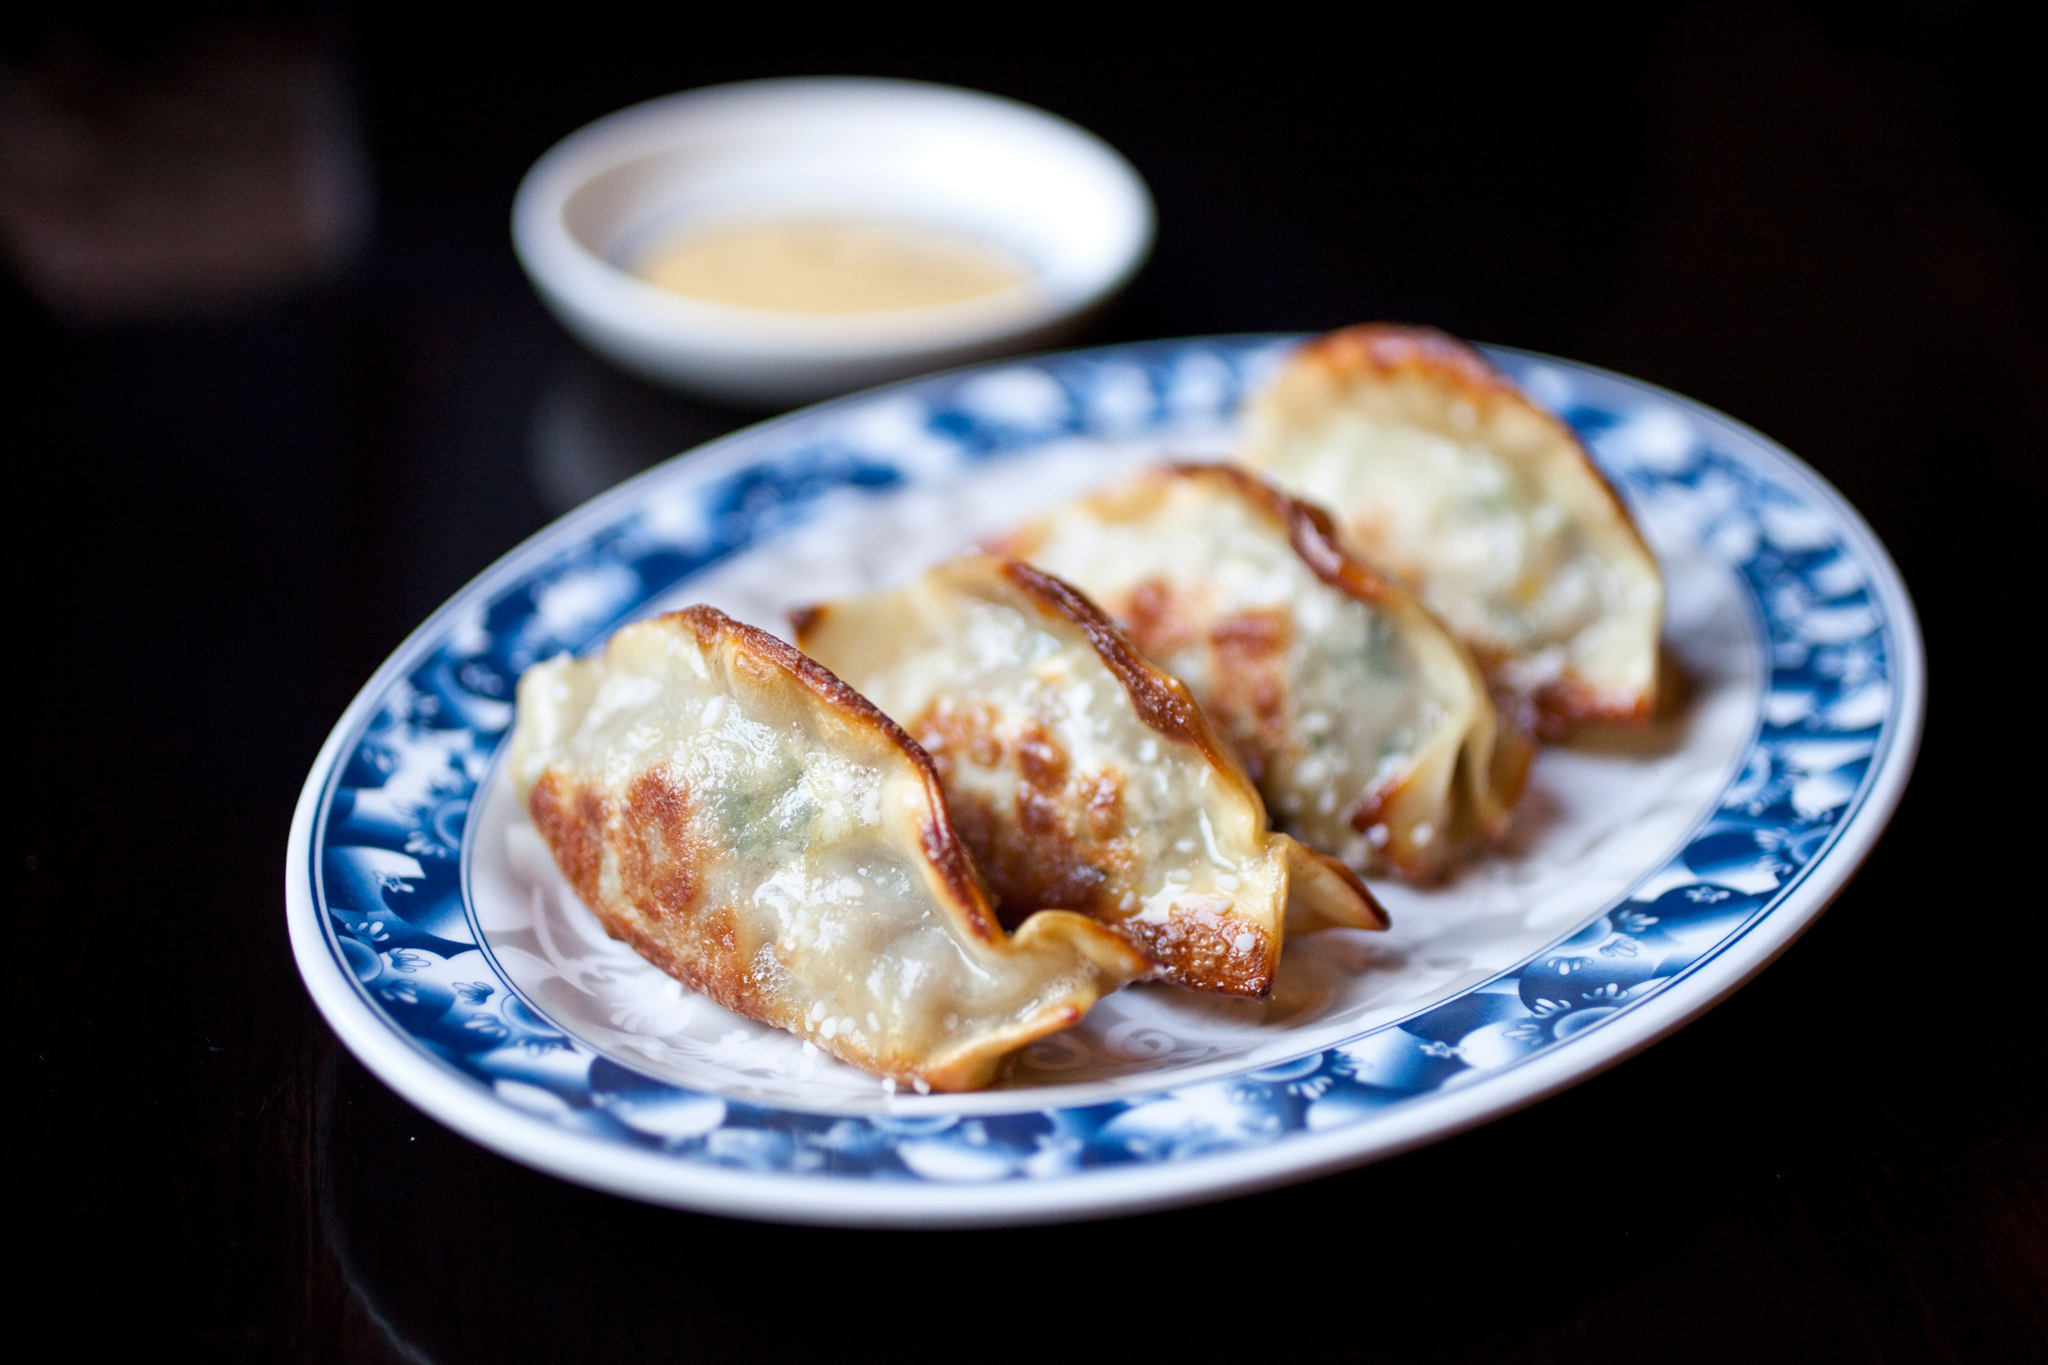 Pretzel pork and chive dumplings at Talde